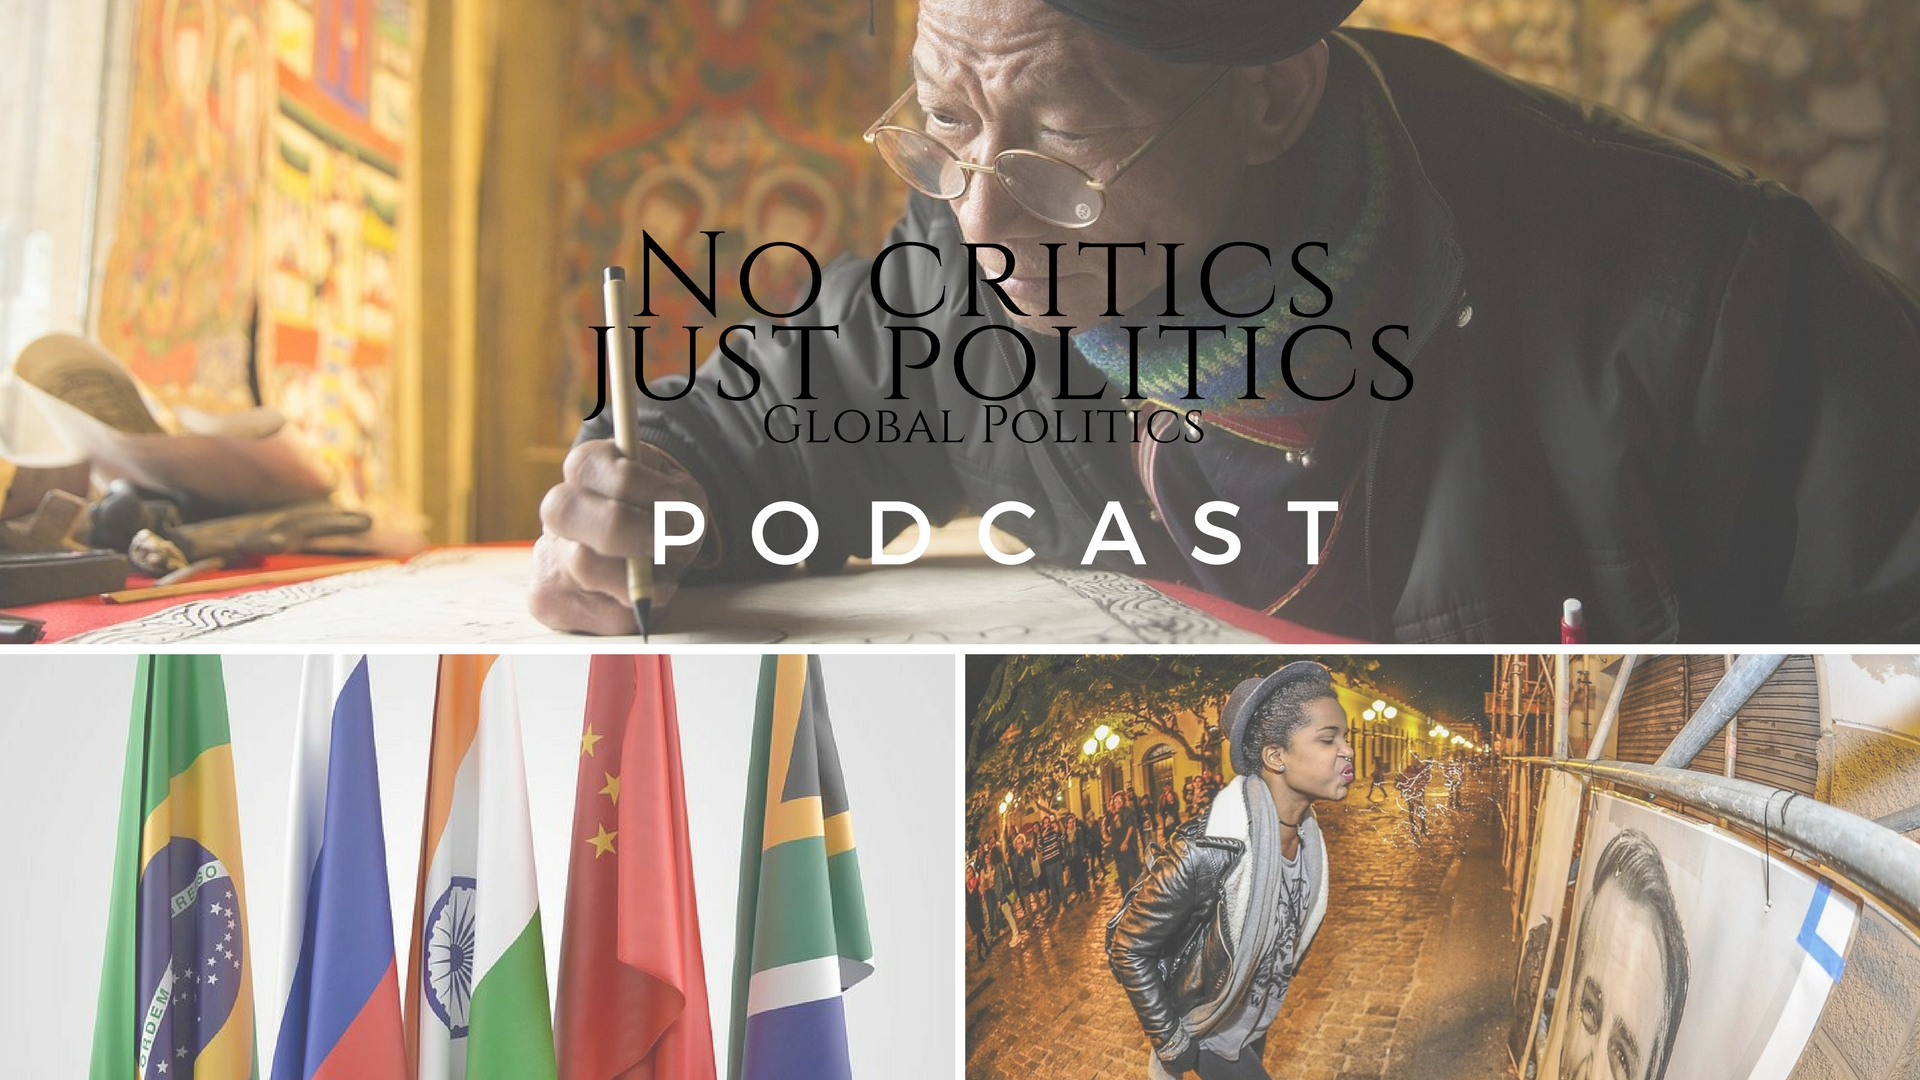 Episode 3 of The ' #NoCriticsJustPolitics ' Podcast is UP! Listen in below